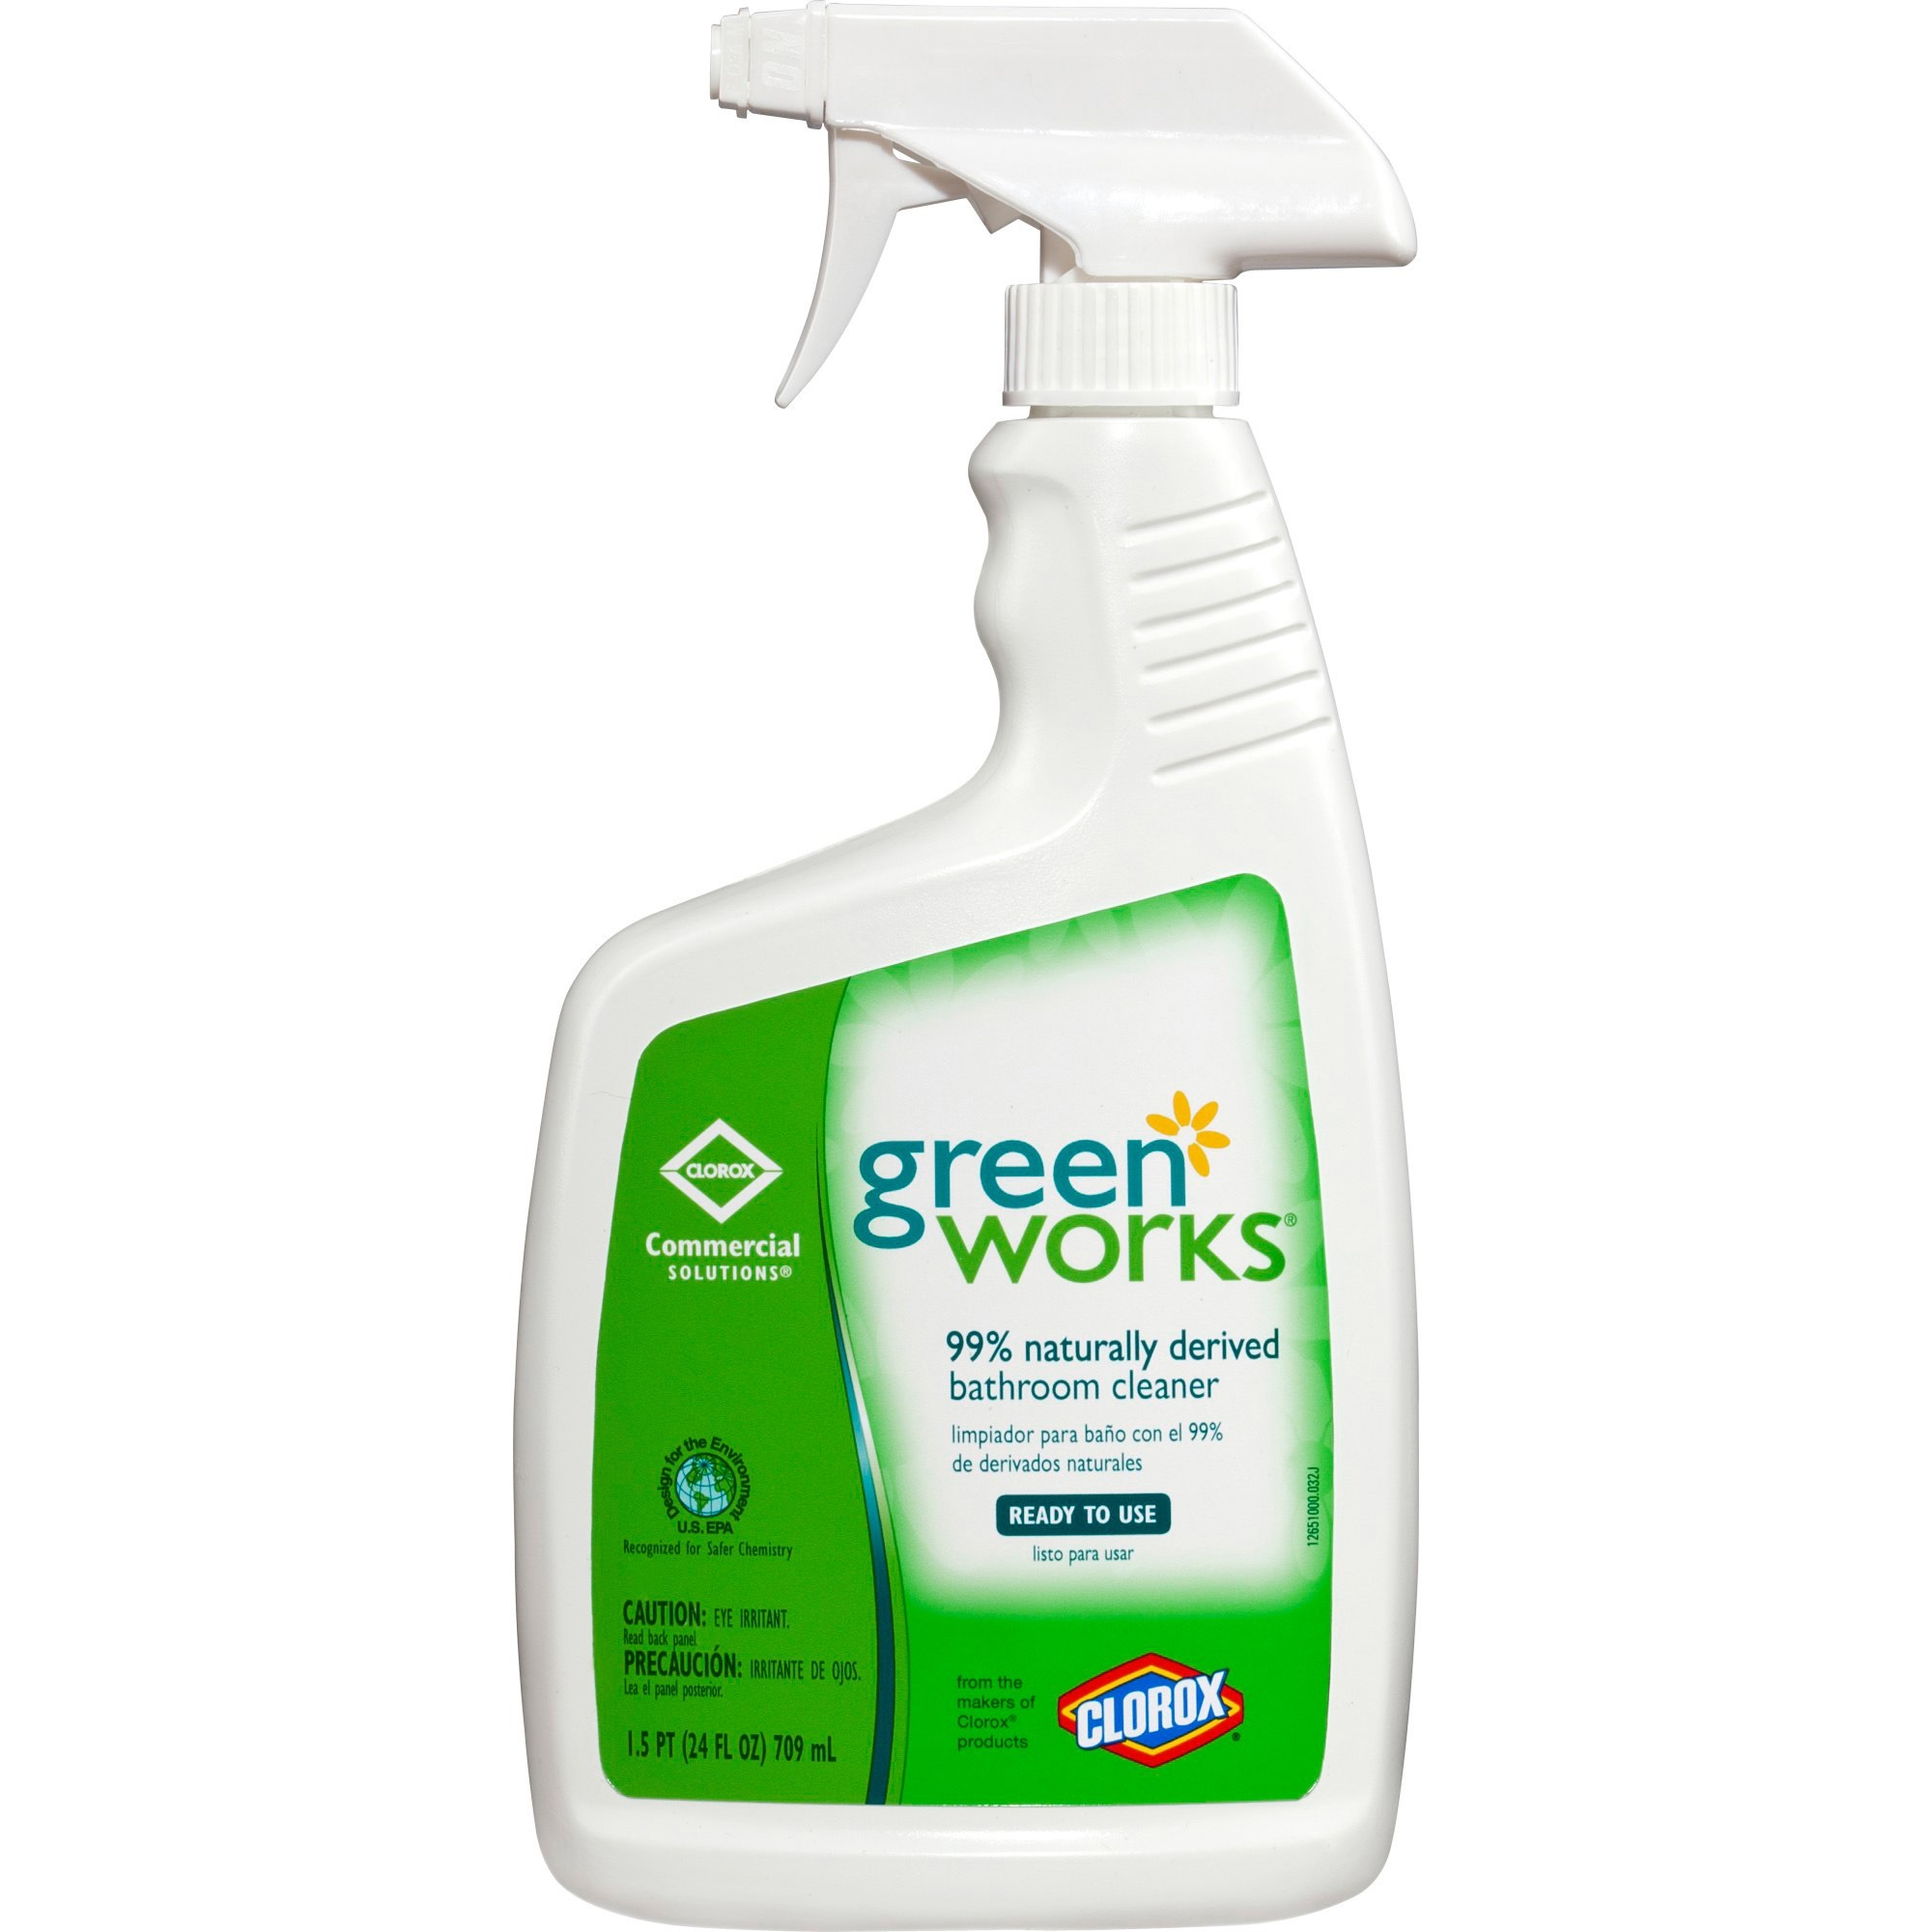 Power Surge Technologies Ltd Cleaning Breakroom Cleaning - Natural bathroom cleaner